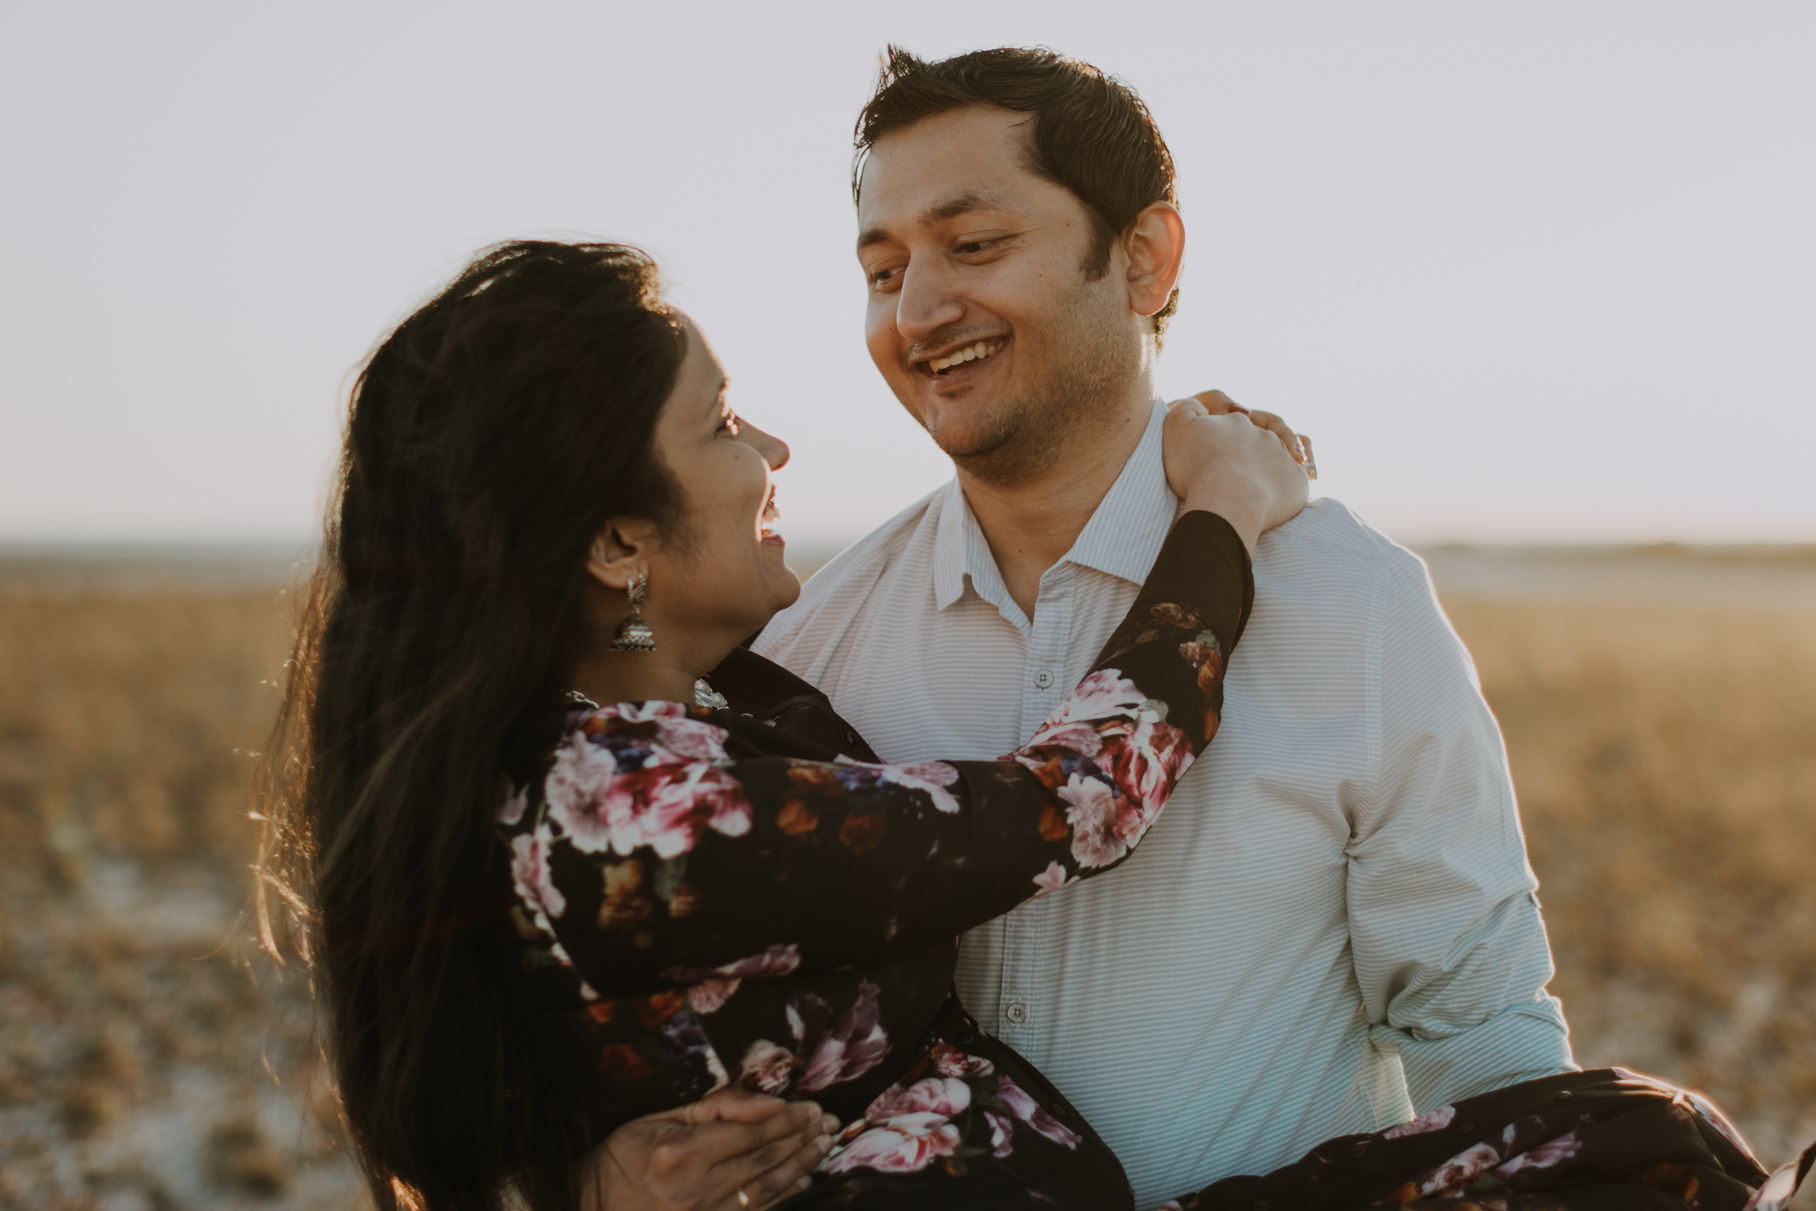 freehearted film co | st pete engagement photo session